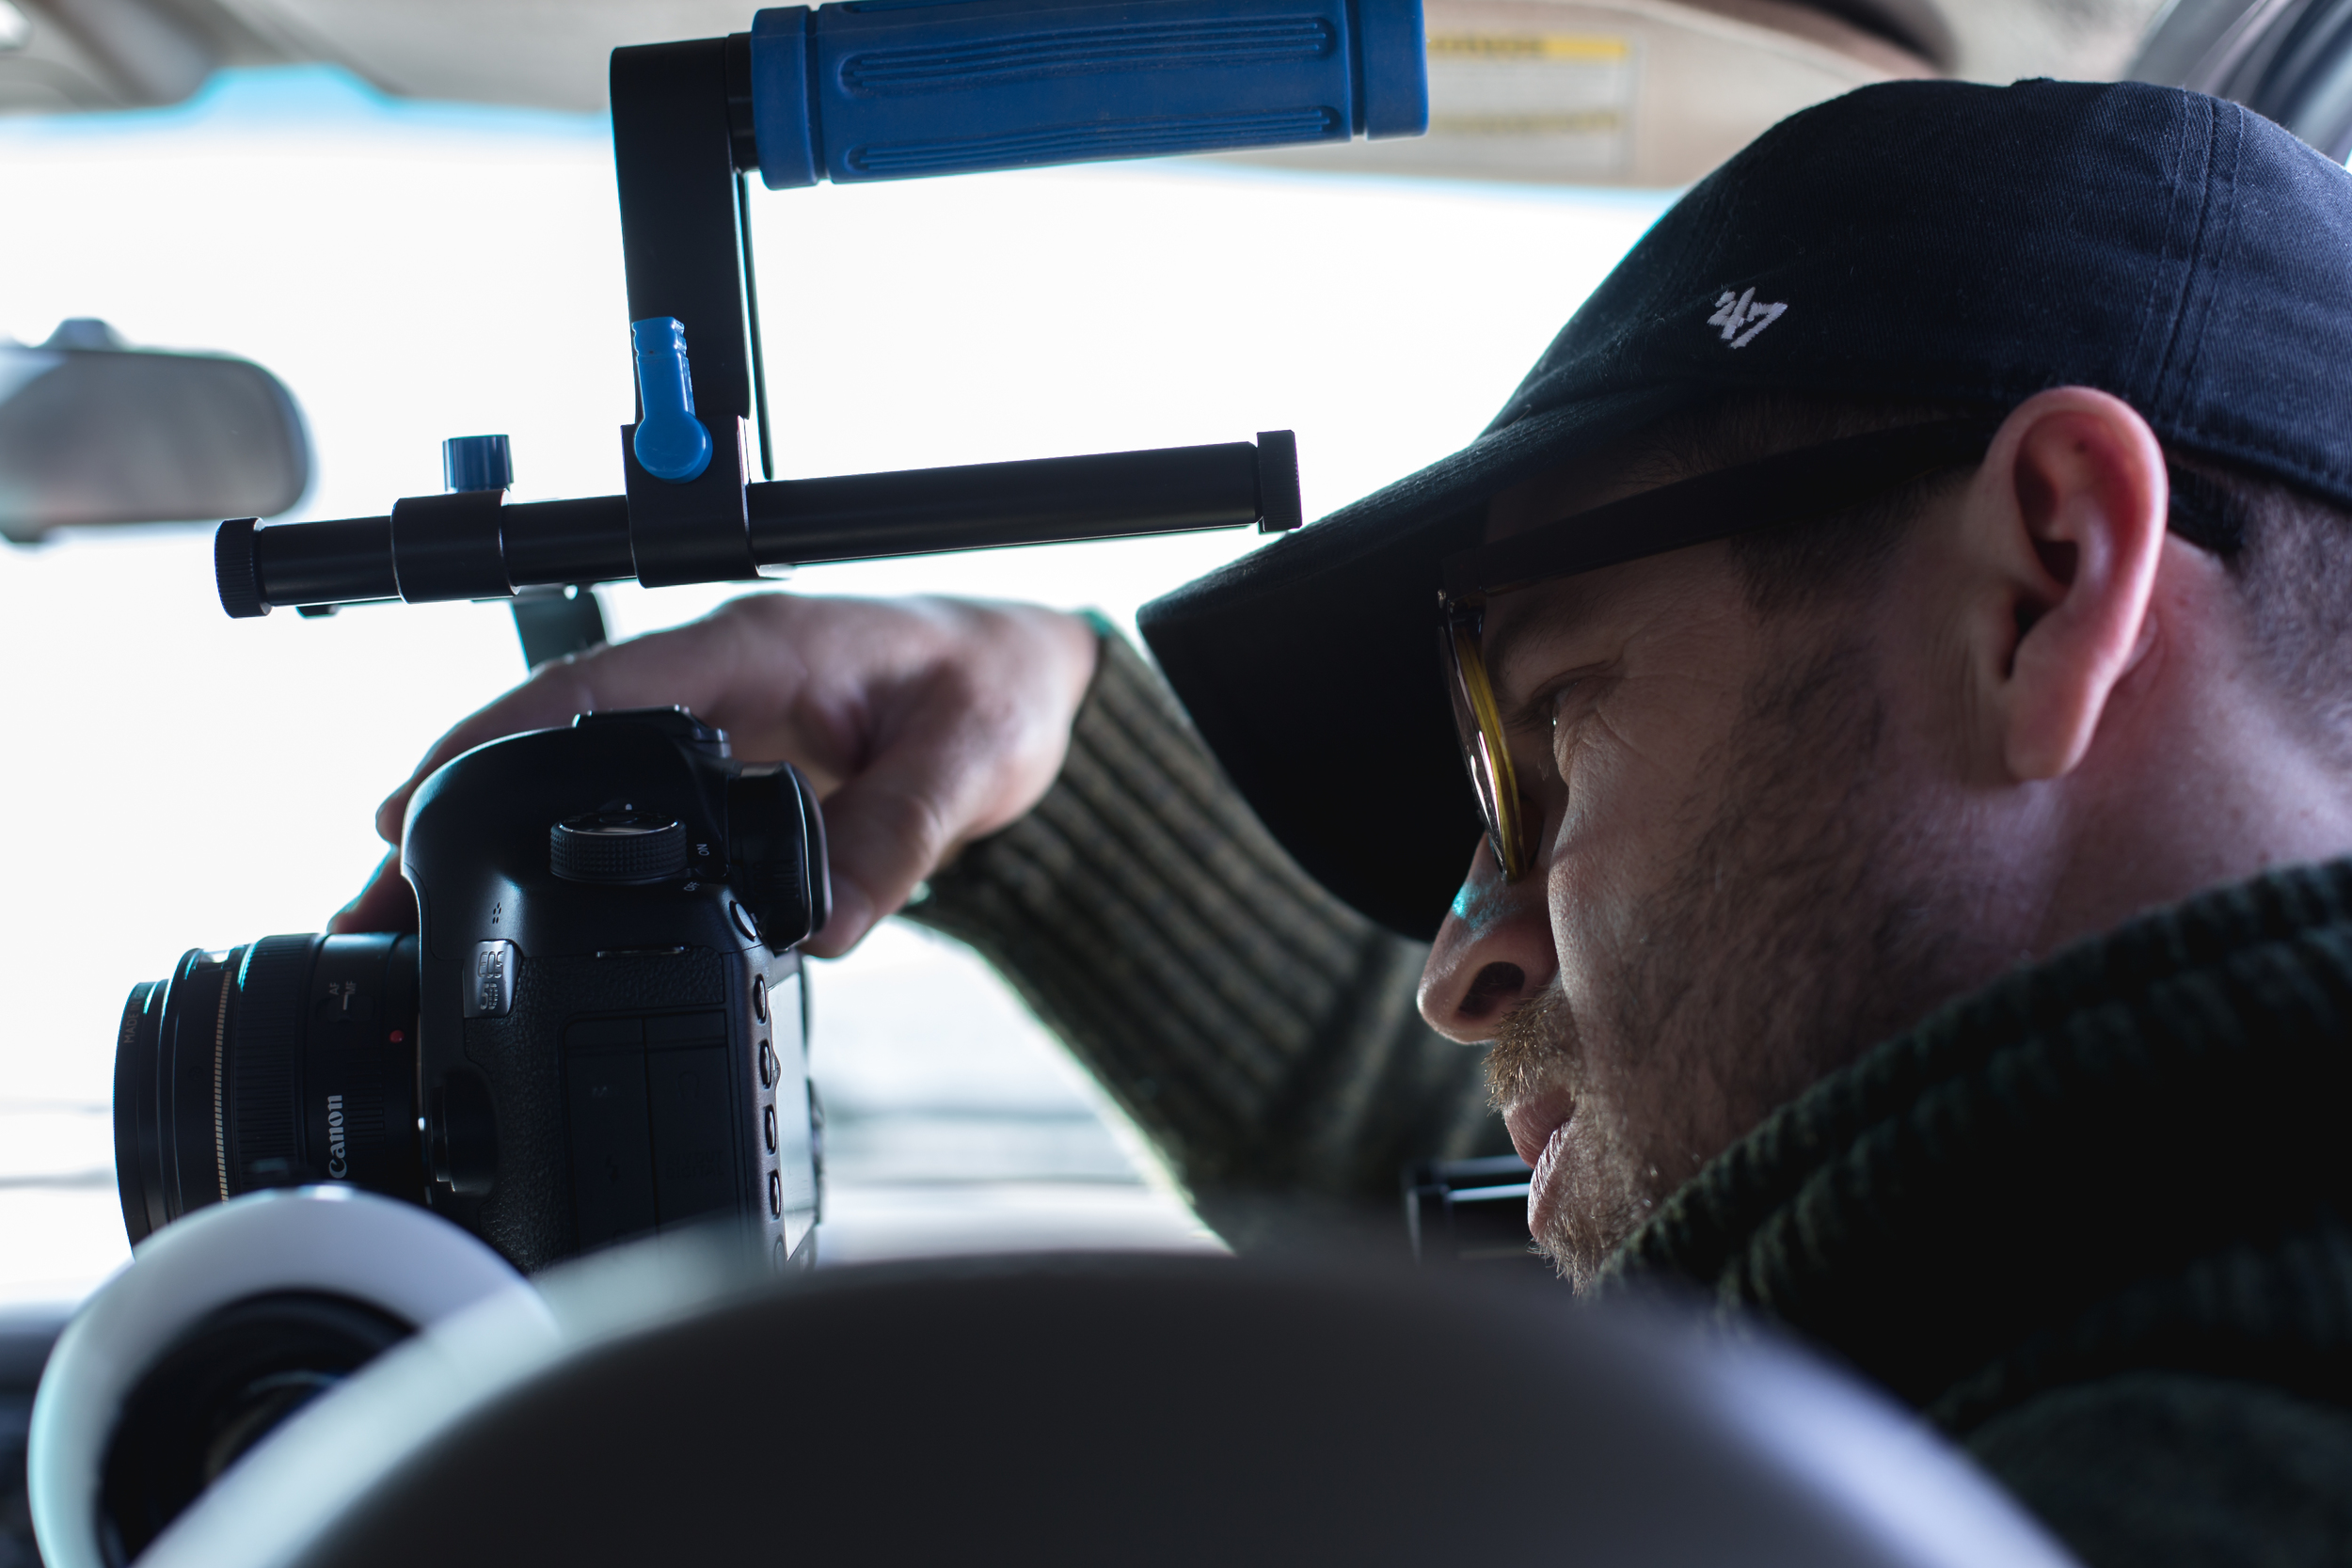 Joel Addams Filming on a Should Rig and 5D